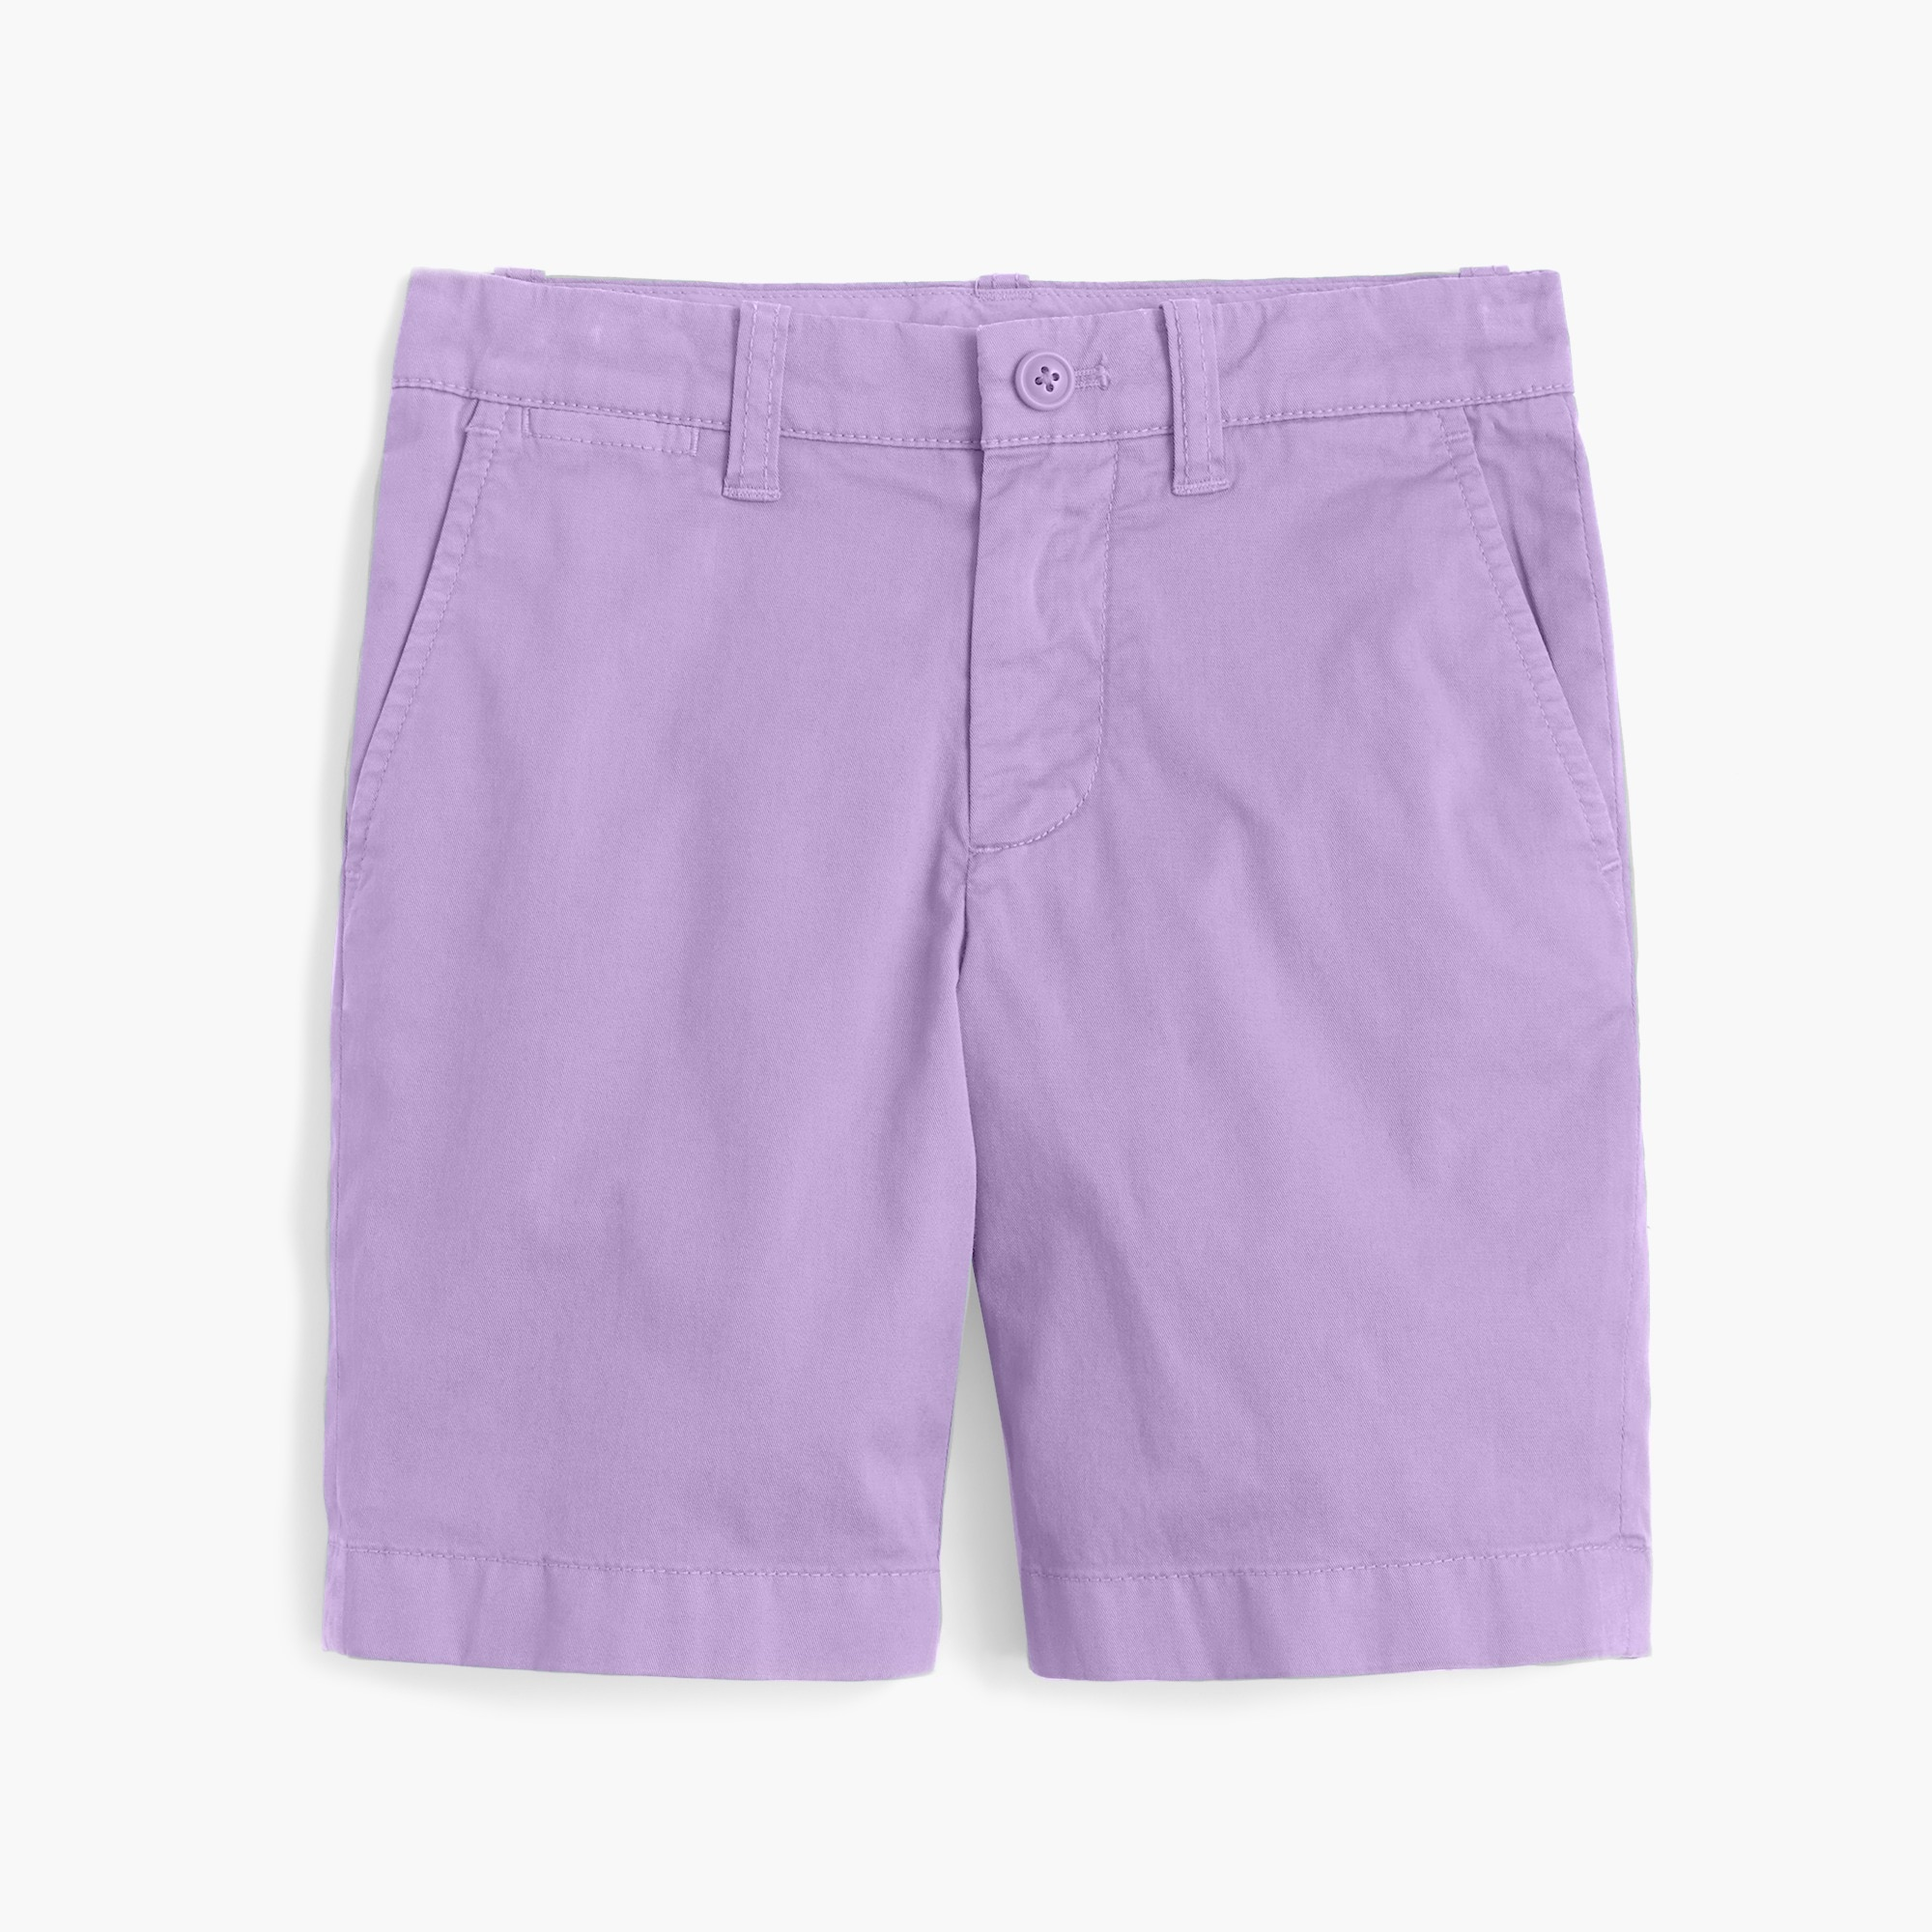 boys Boys' stretch Stanton short in lightweight chino